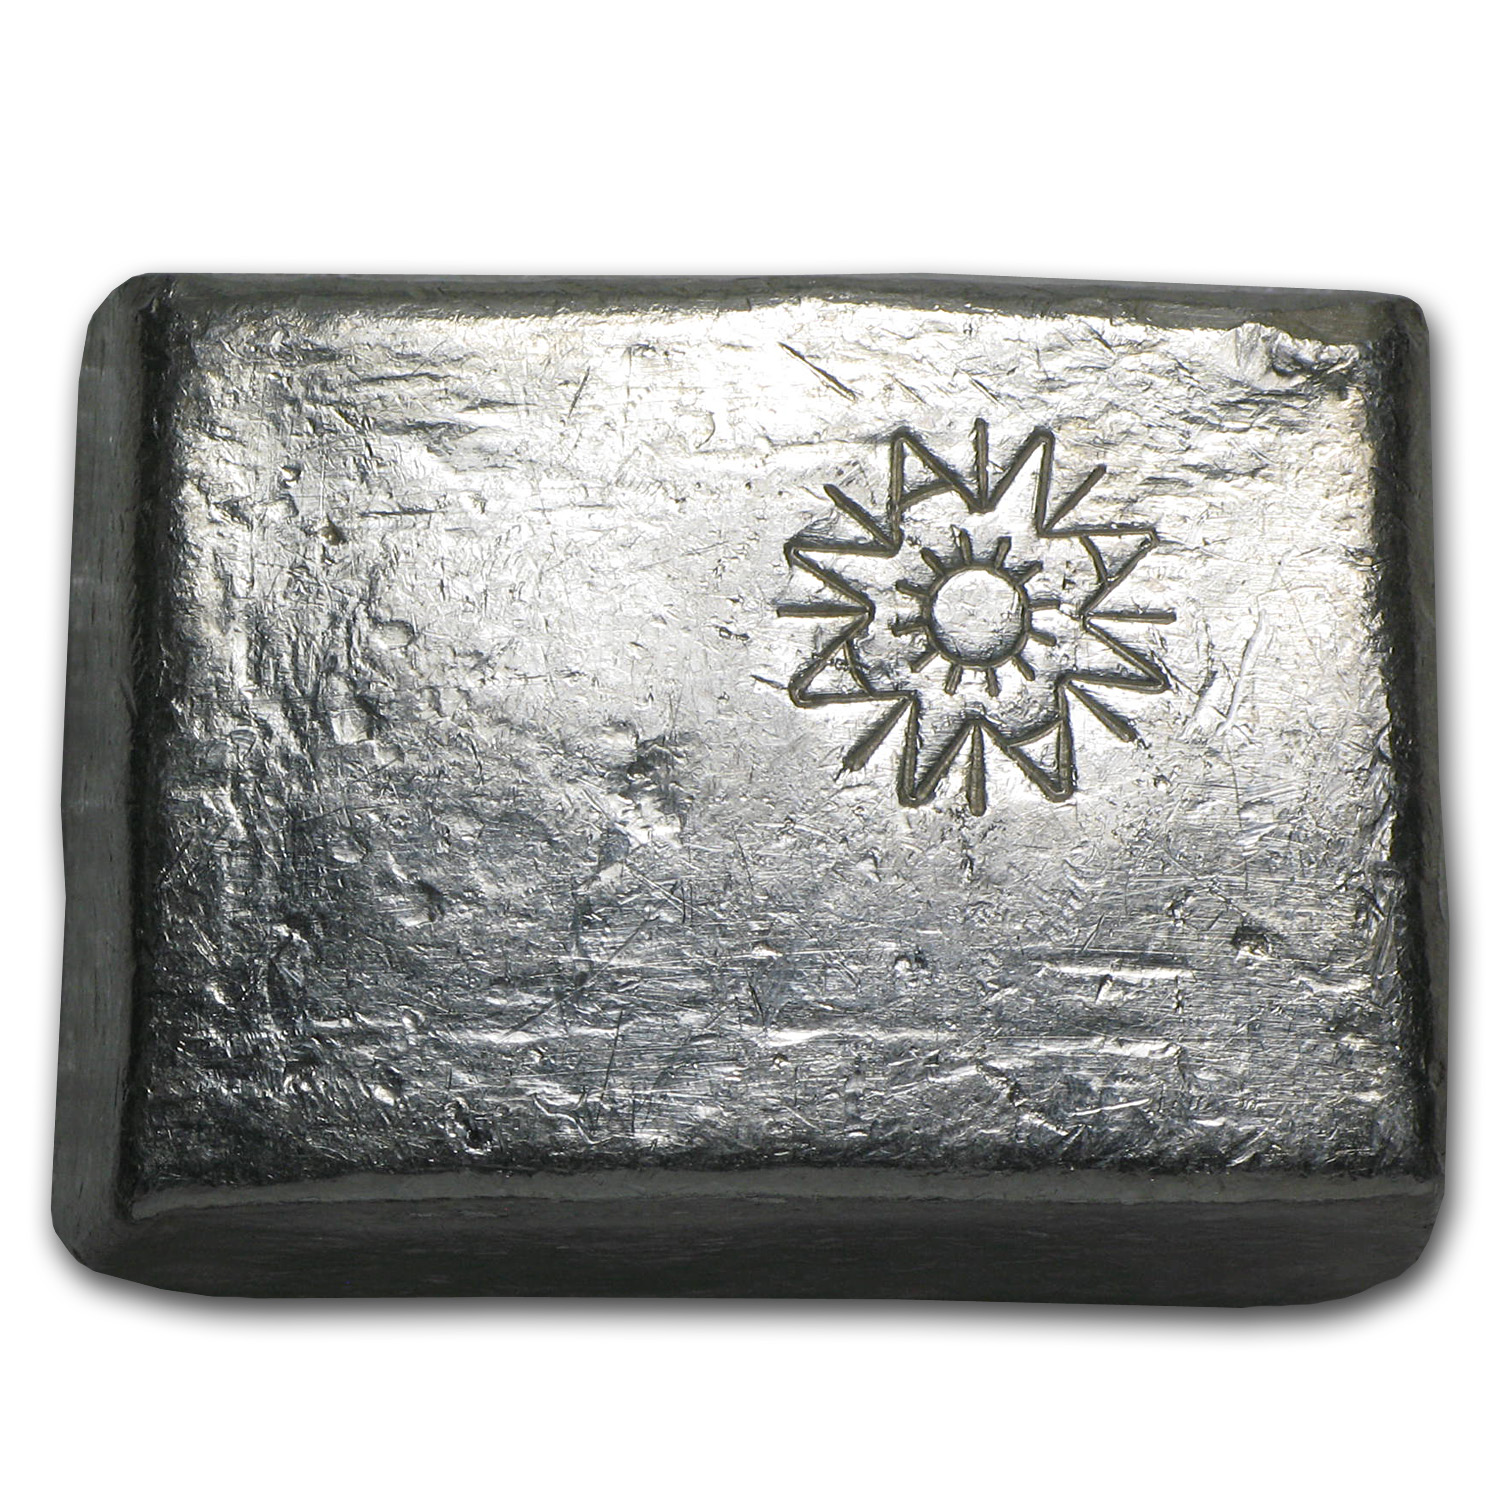 5.77 oz Silver Bars - A W Smelter